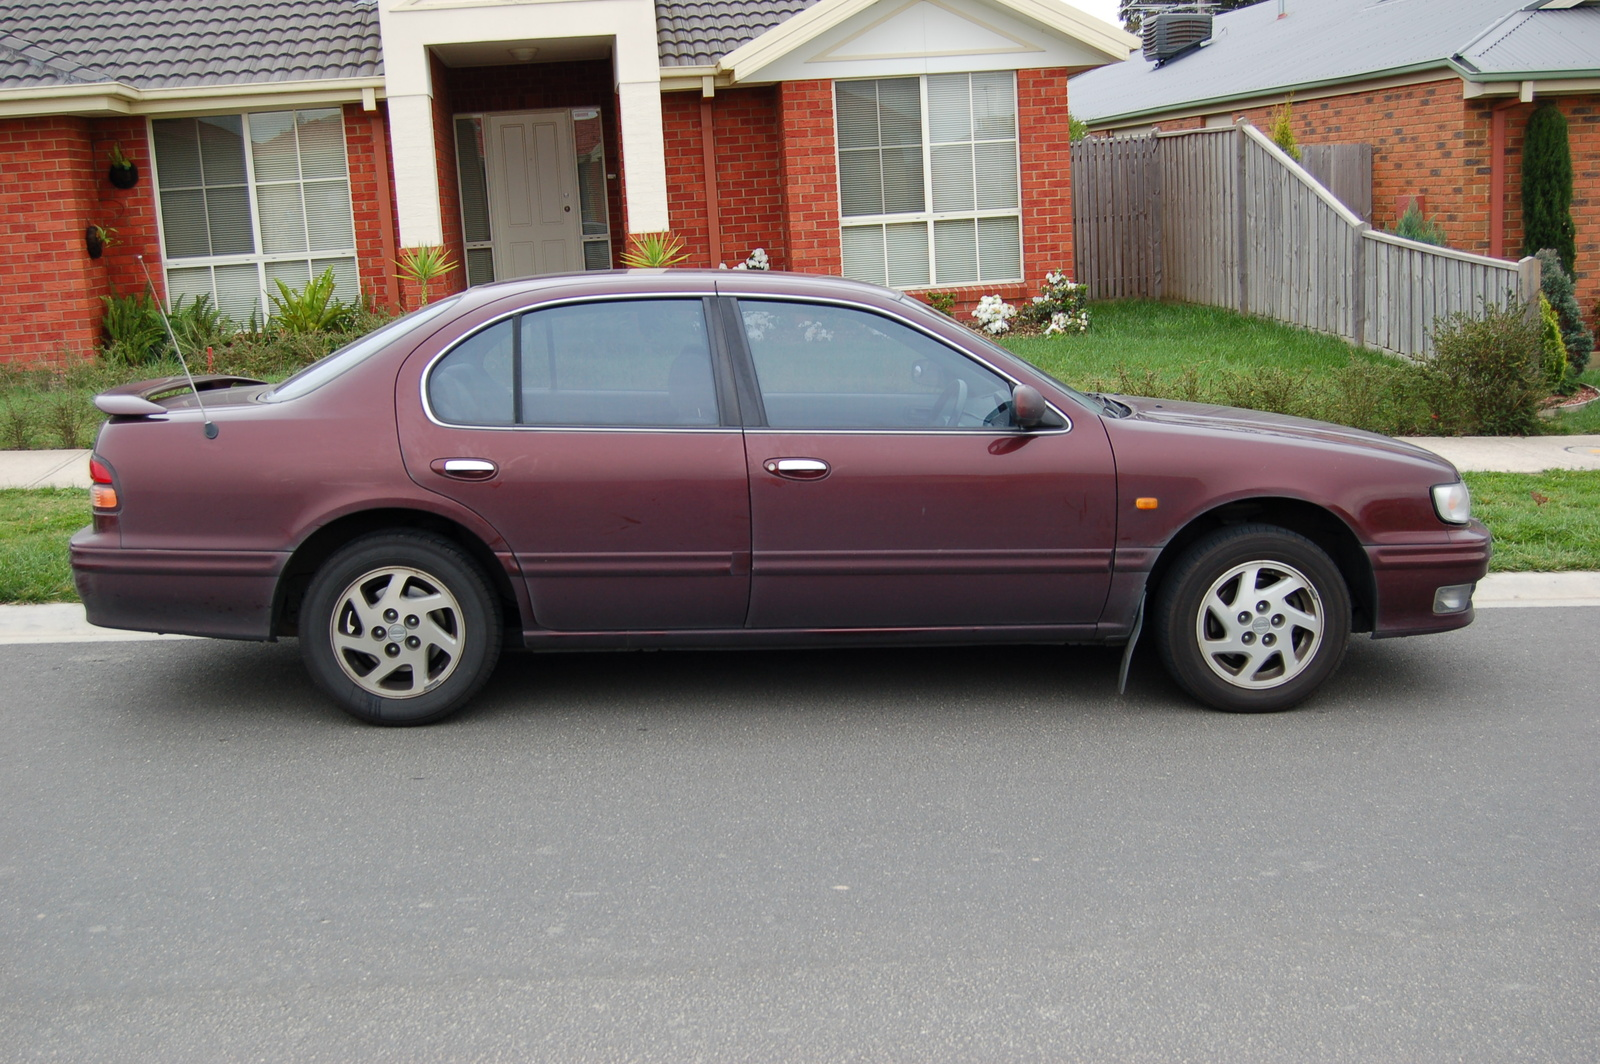 1996 Nissan Maxima 4 Dr SE Sedan picture